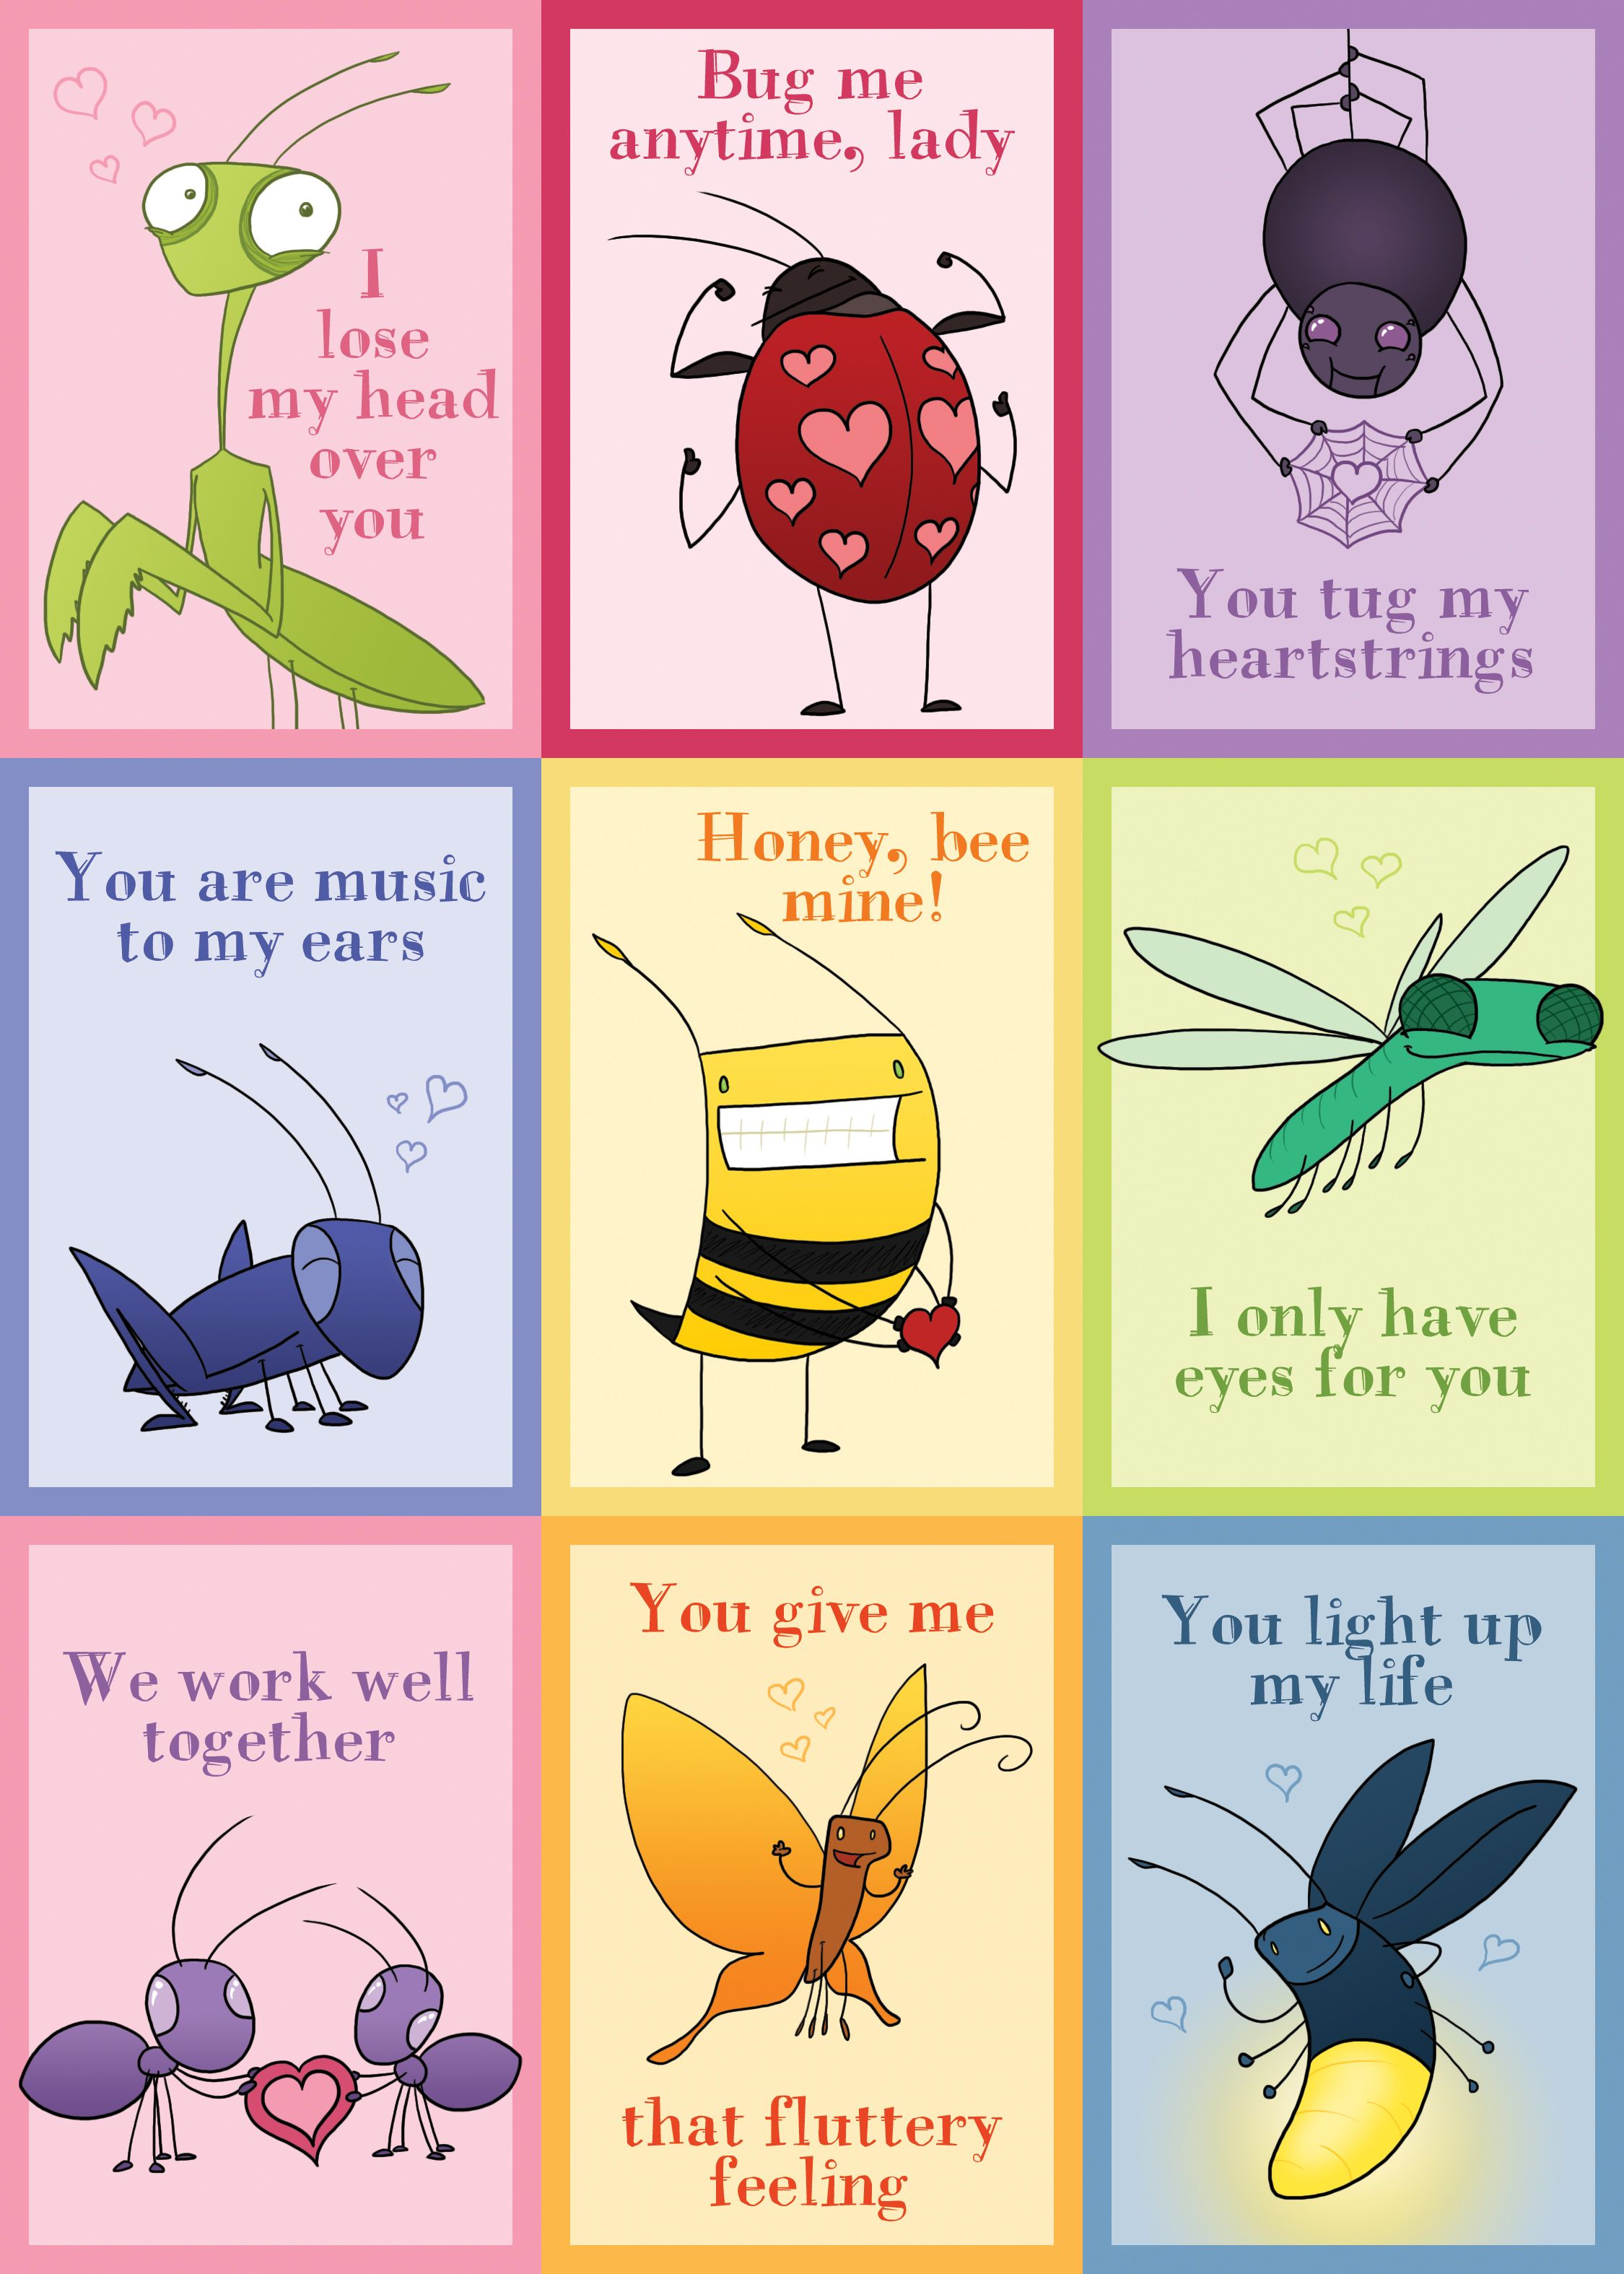 Image of: Couples Image Result For Valentines Day Animal Puns Pinterest Image Result For Valentines Day Animal Puns Rocks